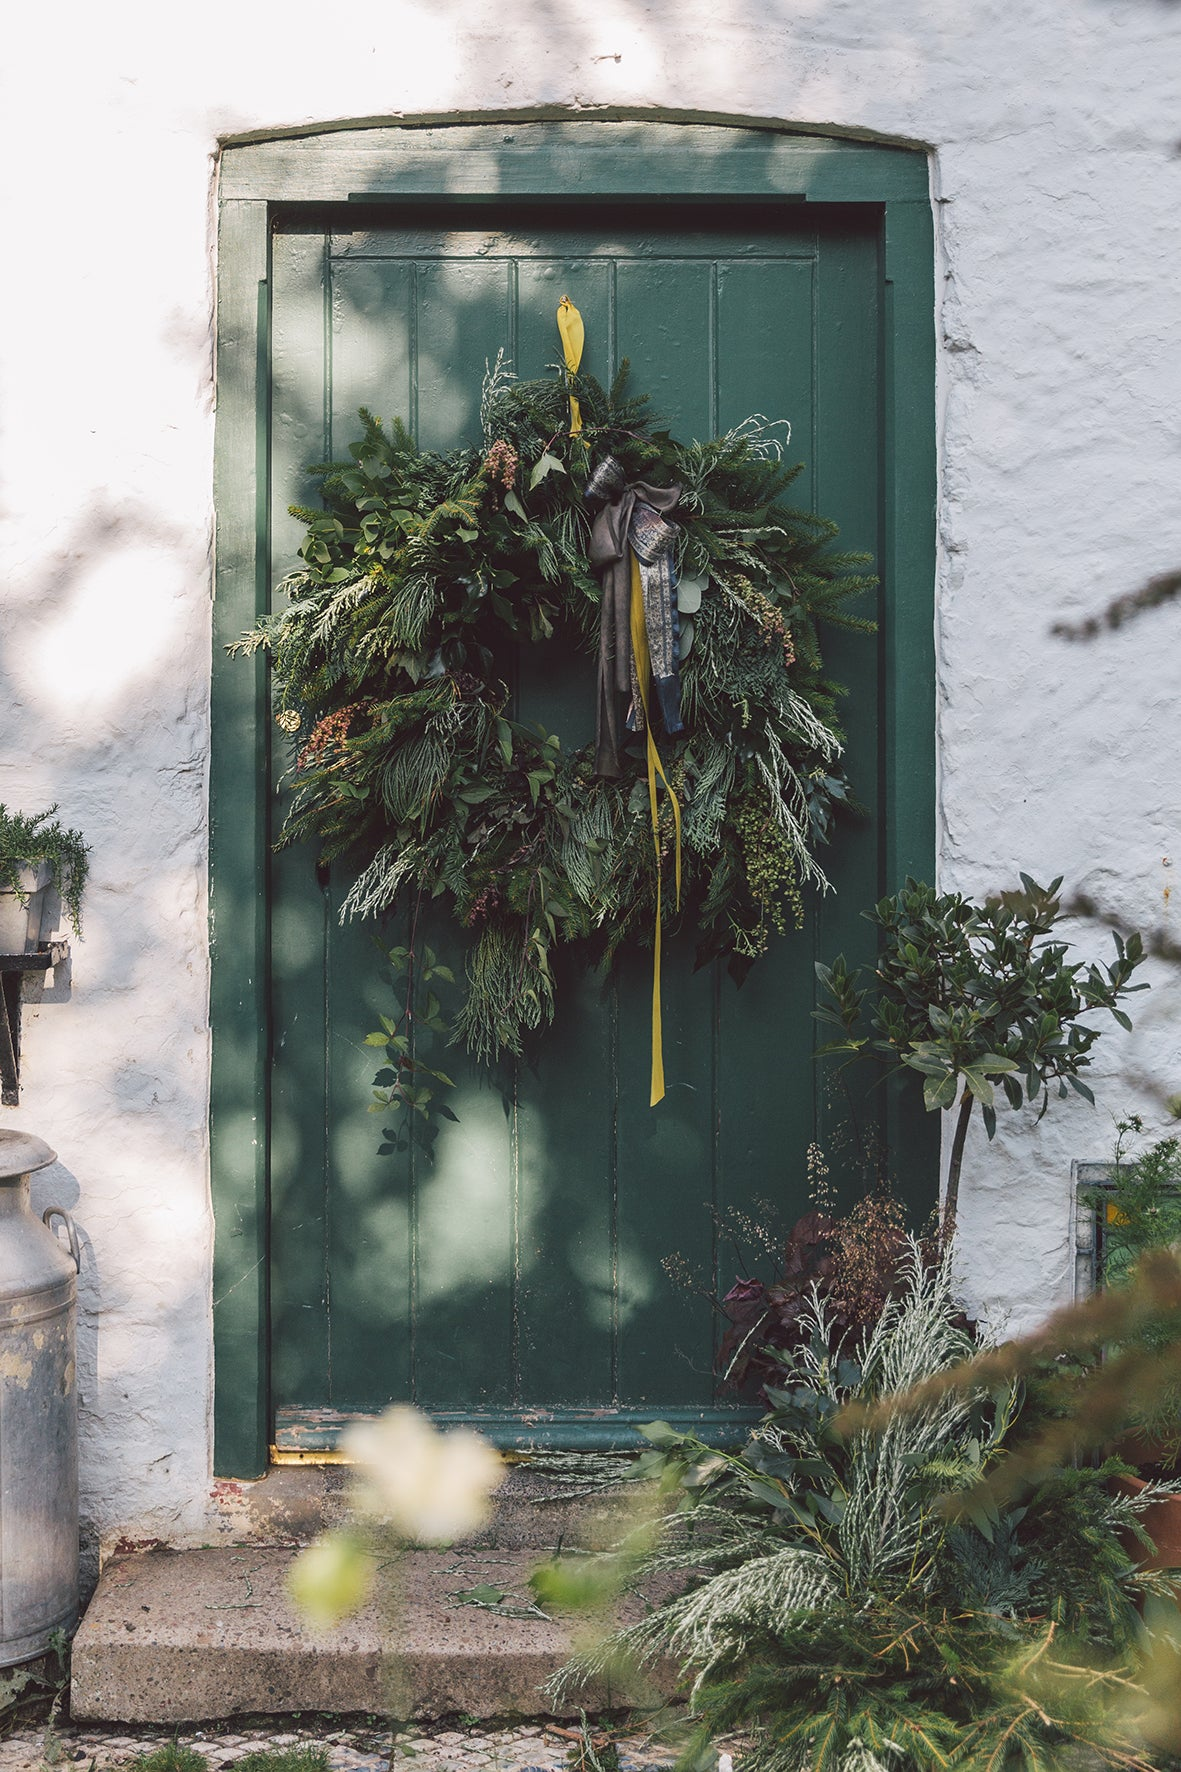 LUXURY FOLIAGE WREATH WORKSHOP - SATURDAY 8TH DECEMBER - 4-7pm